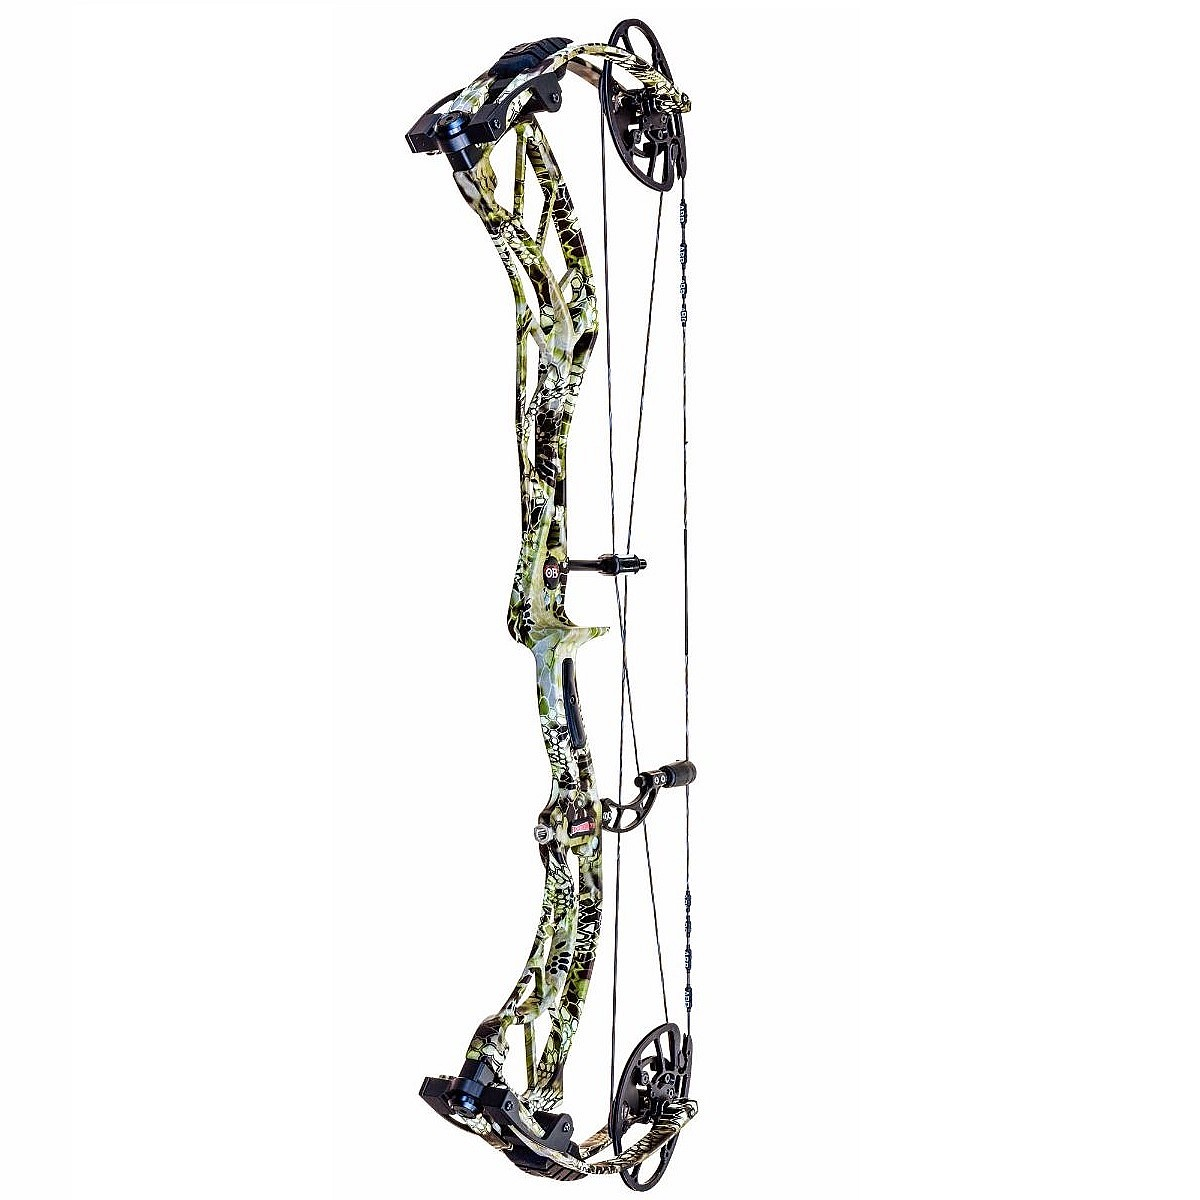 Obsession Fixation Compound Bow Review